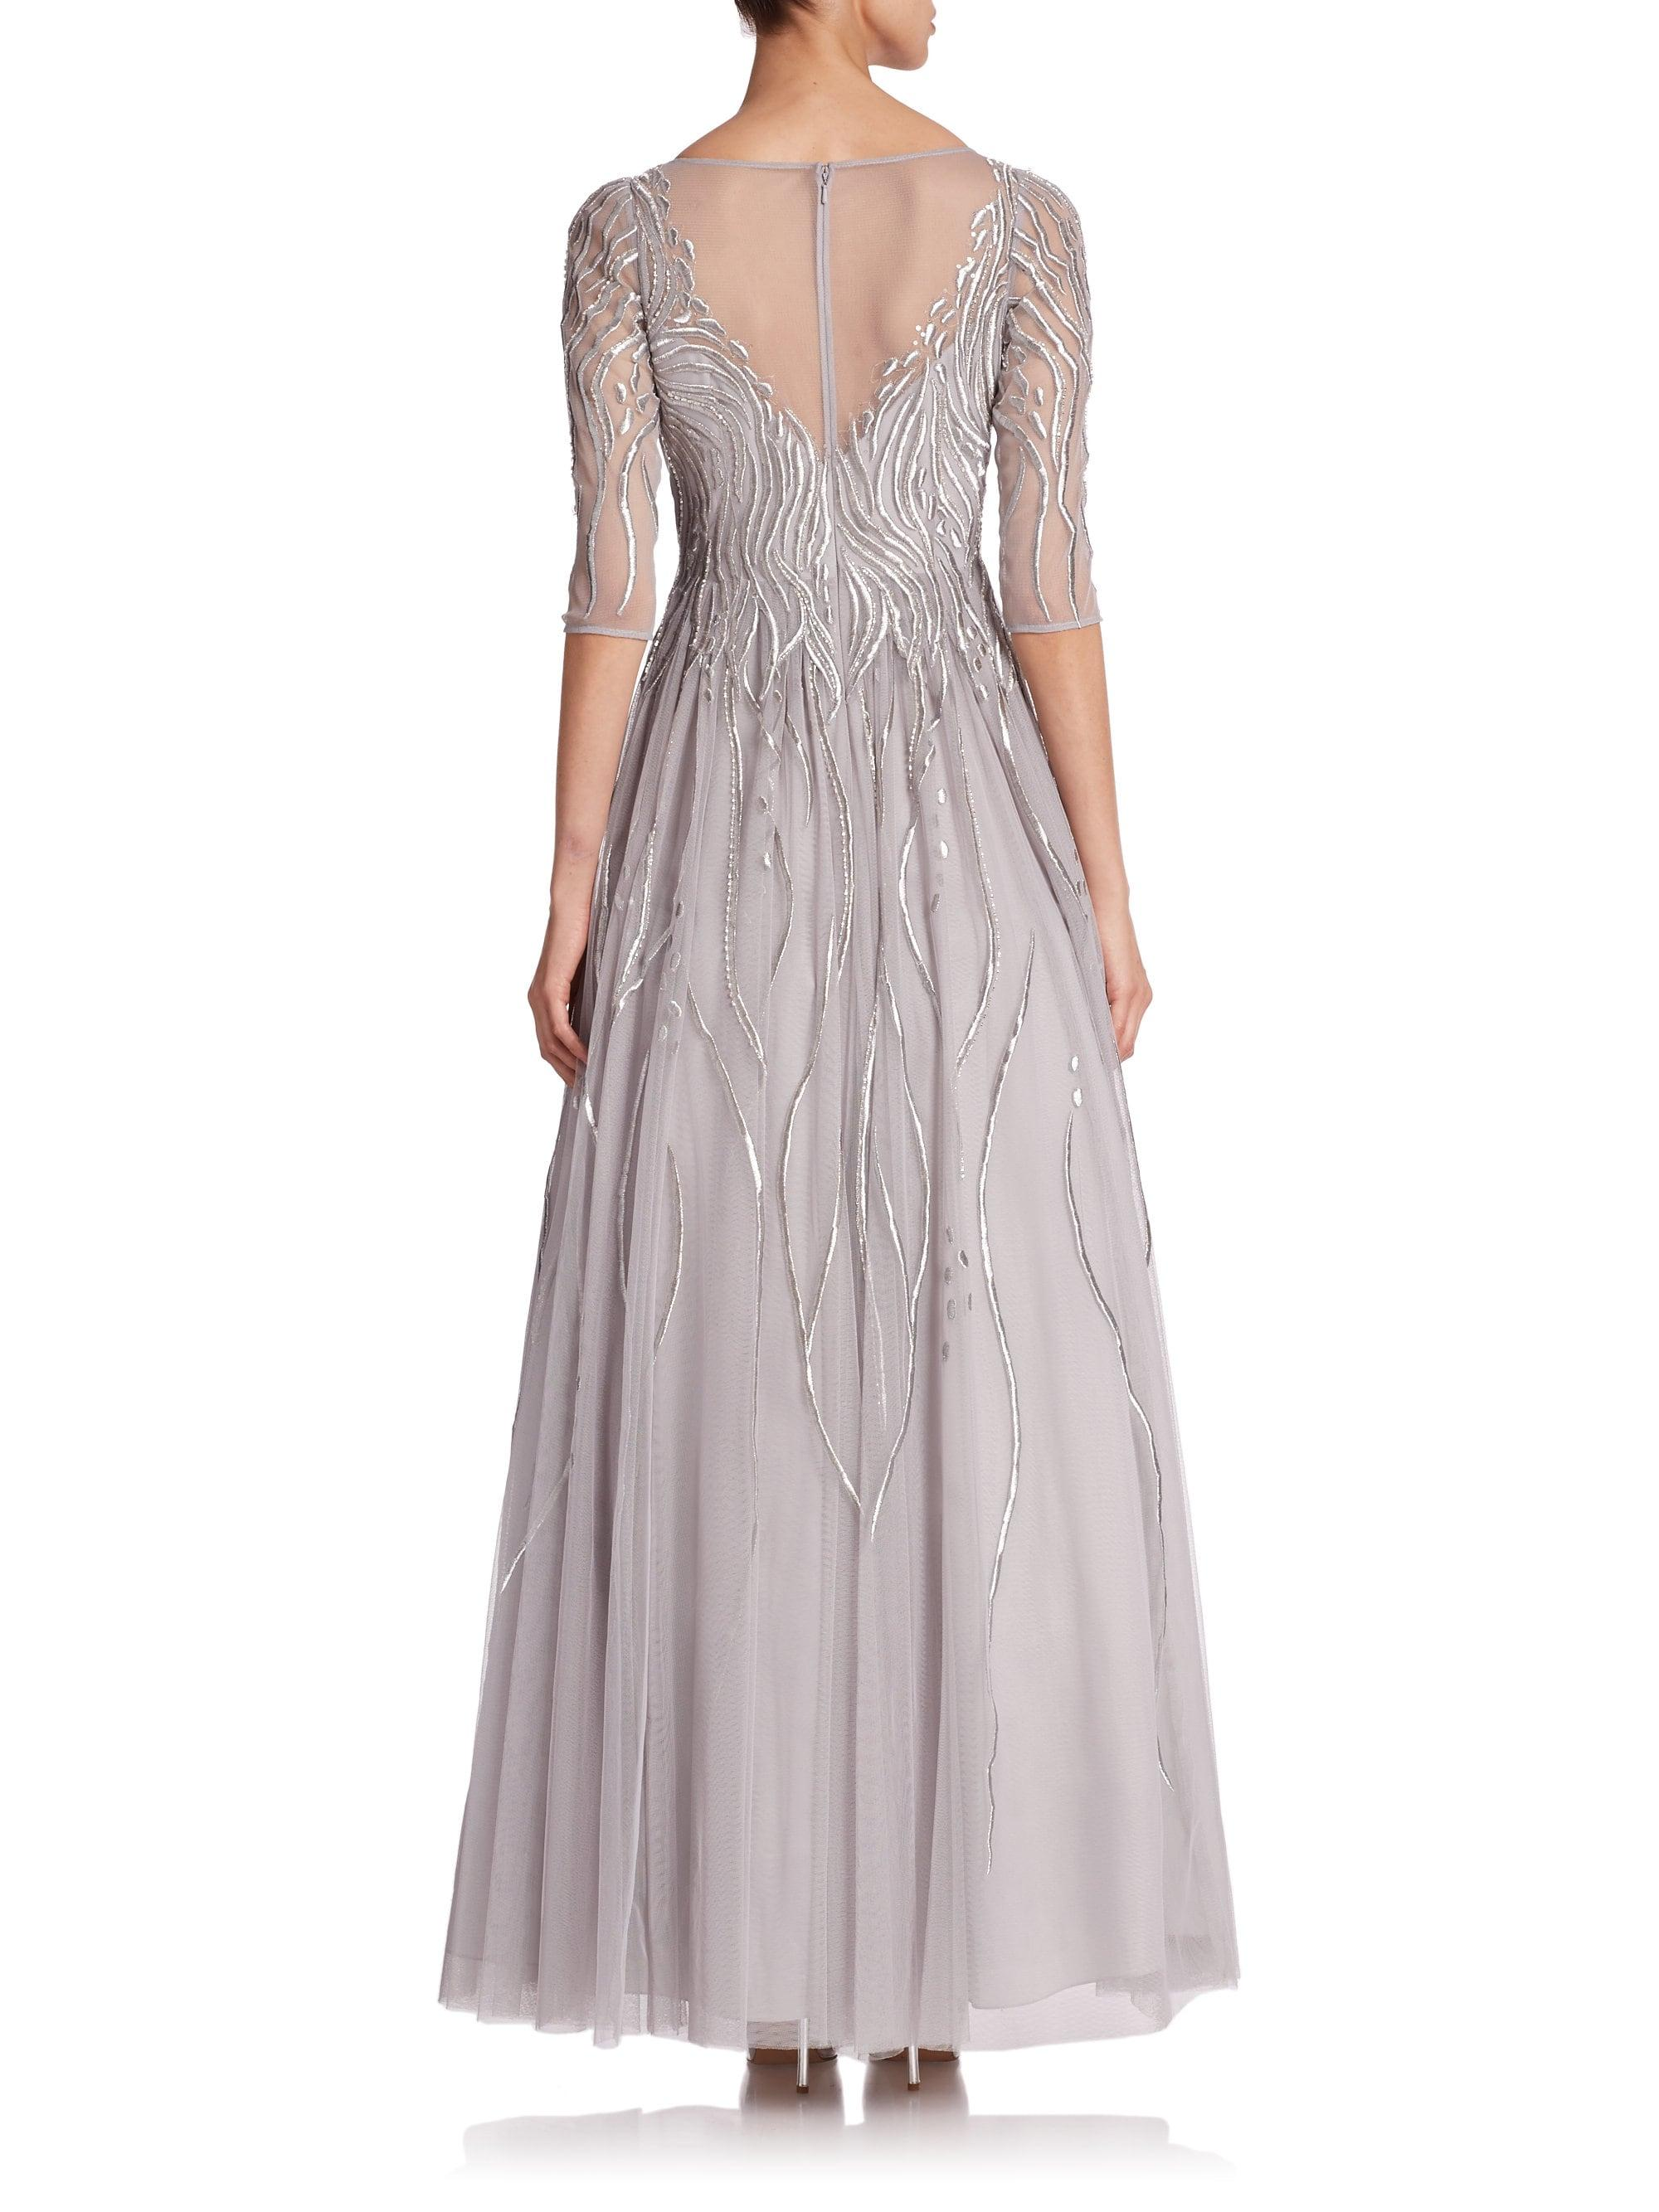 410ab05fb5d Lyst - Basix Black Label Embroidered Illusion Gown in Gray